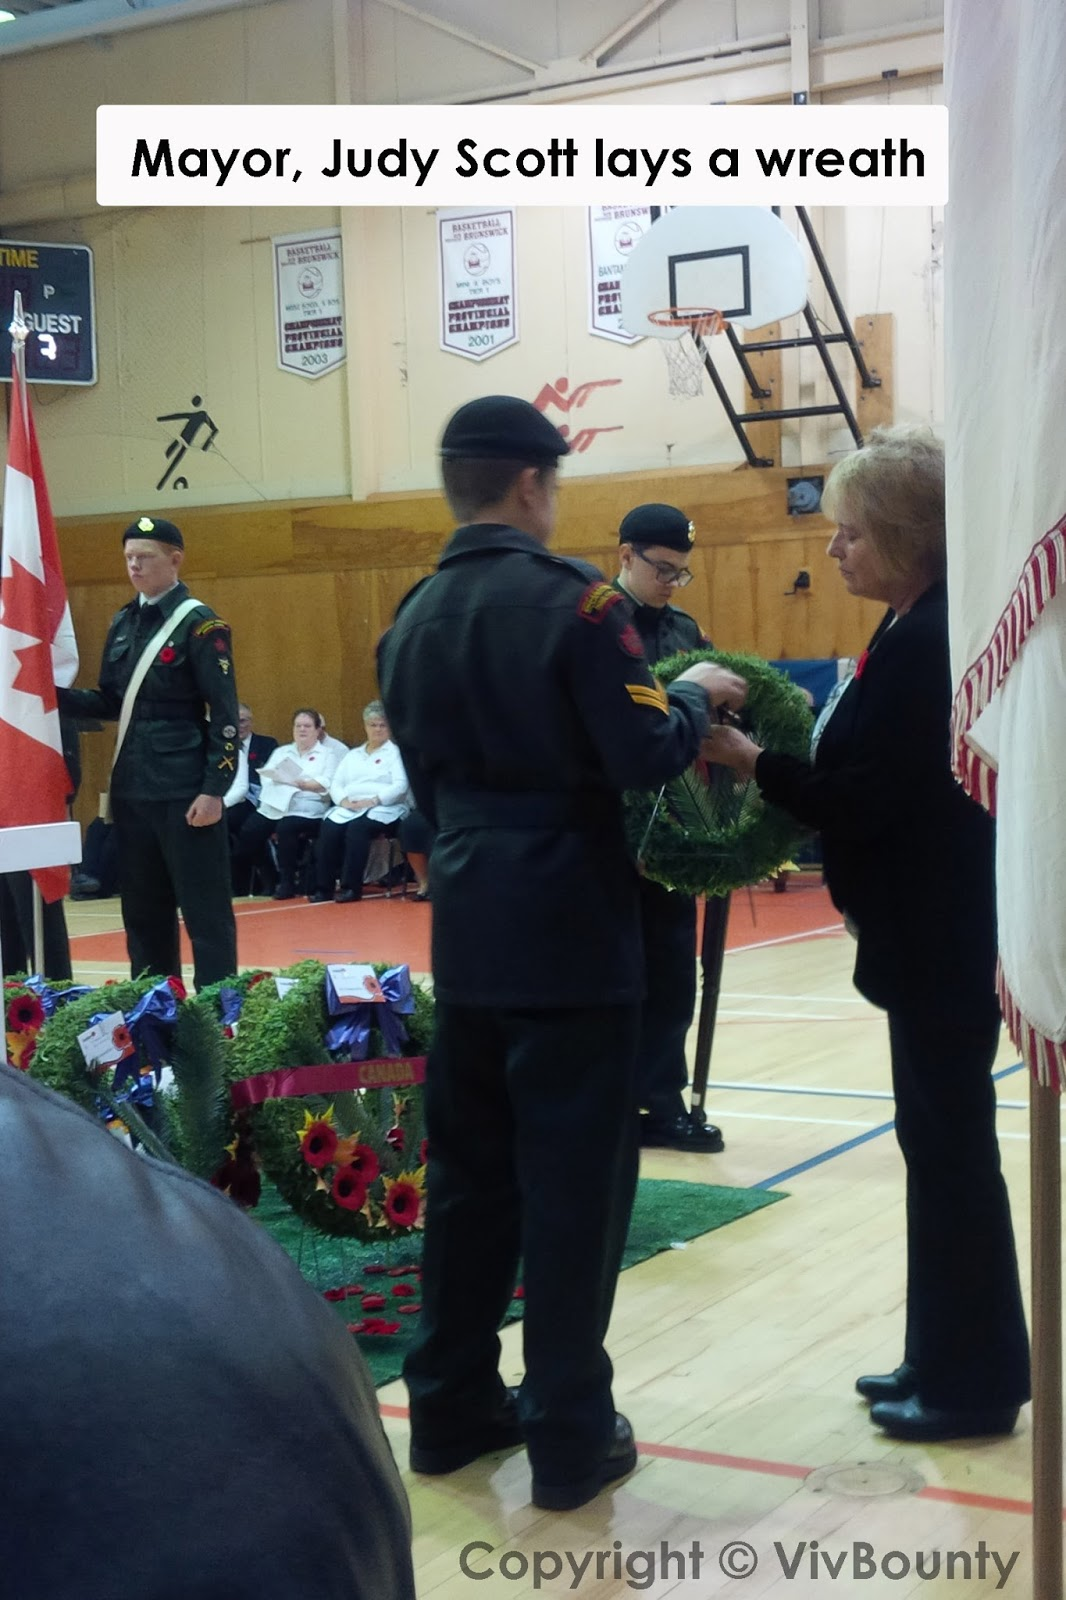 Mayor Judy Scott lays a wreath, VivBounty